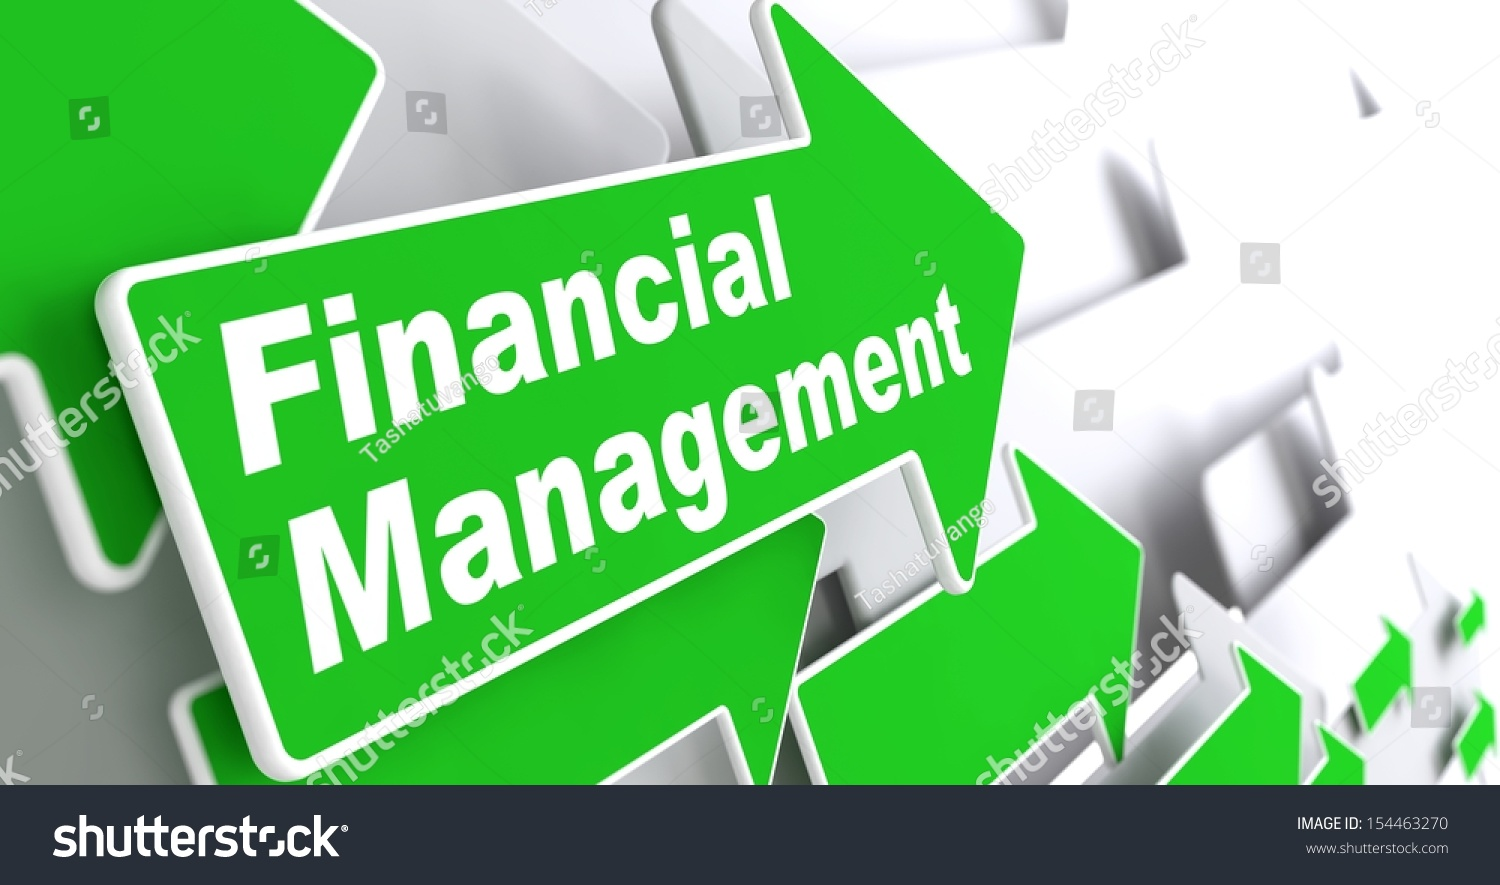 corporate financial manangement Business financial manager empowers business customers to better forecast and manage their cash-flow by aggregating accounts and invoices into a single platform.